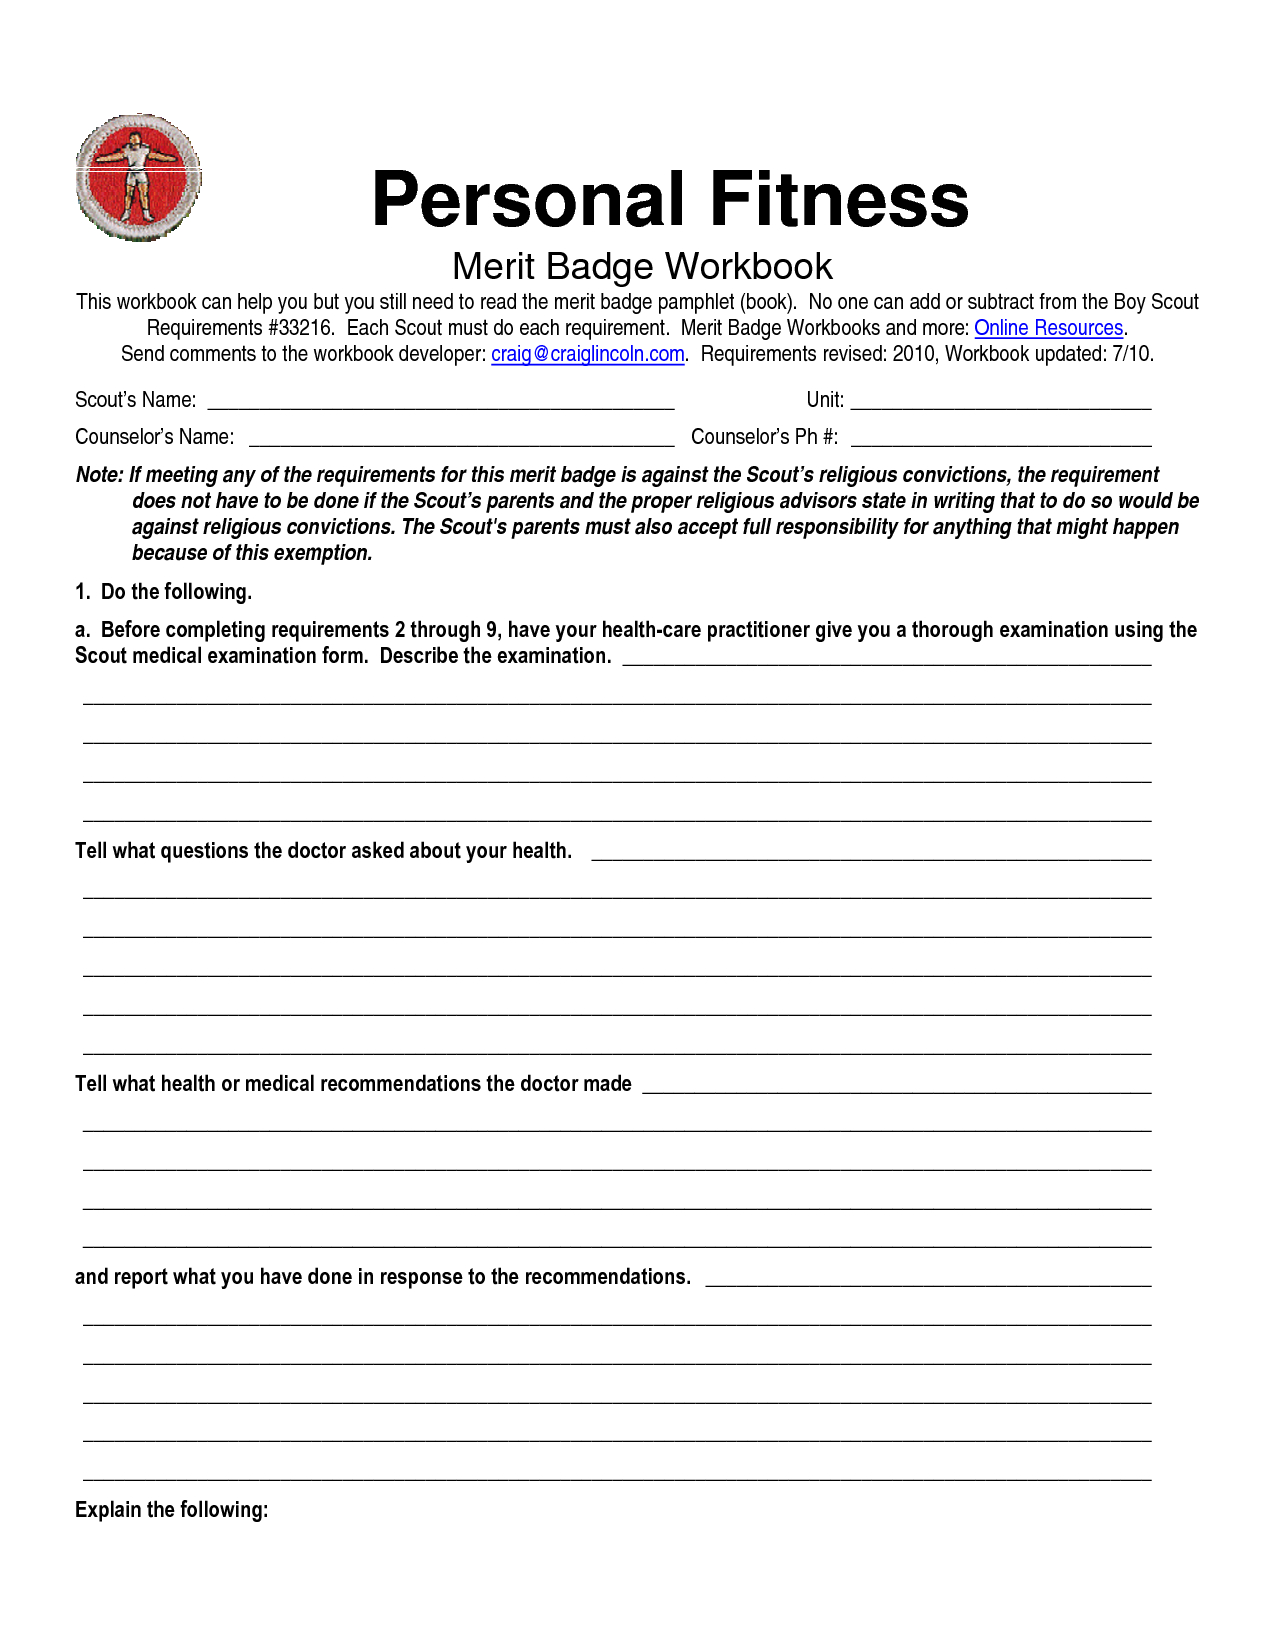 Family Life Merit Badge Worksheet Answers